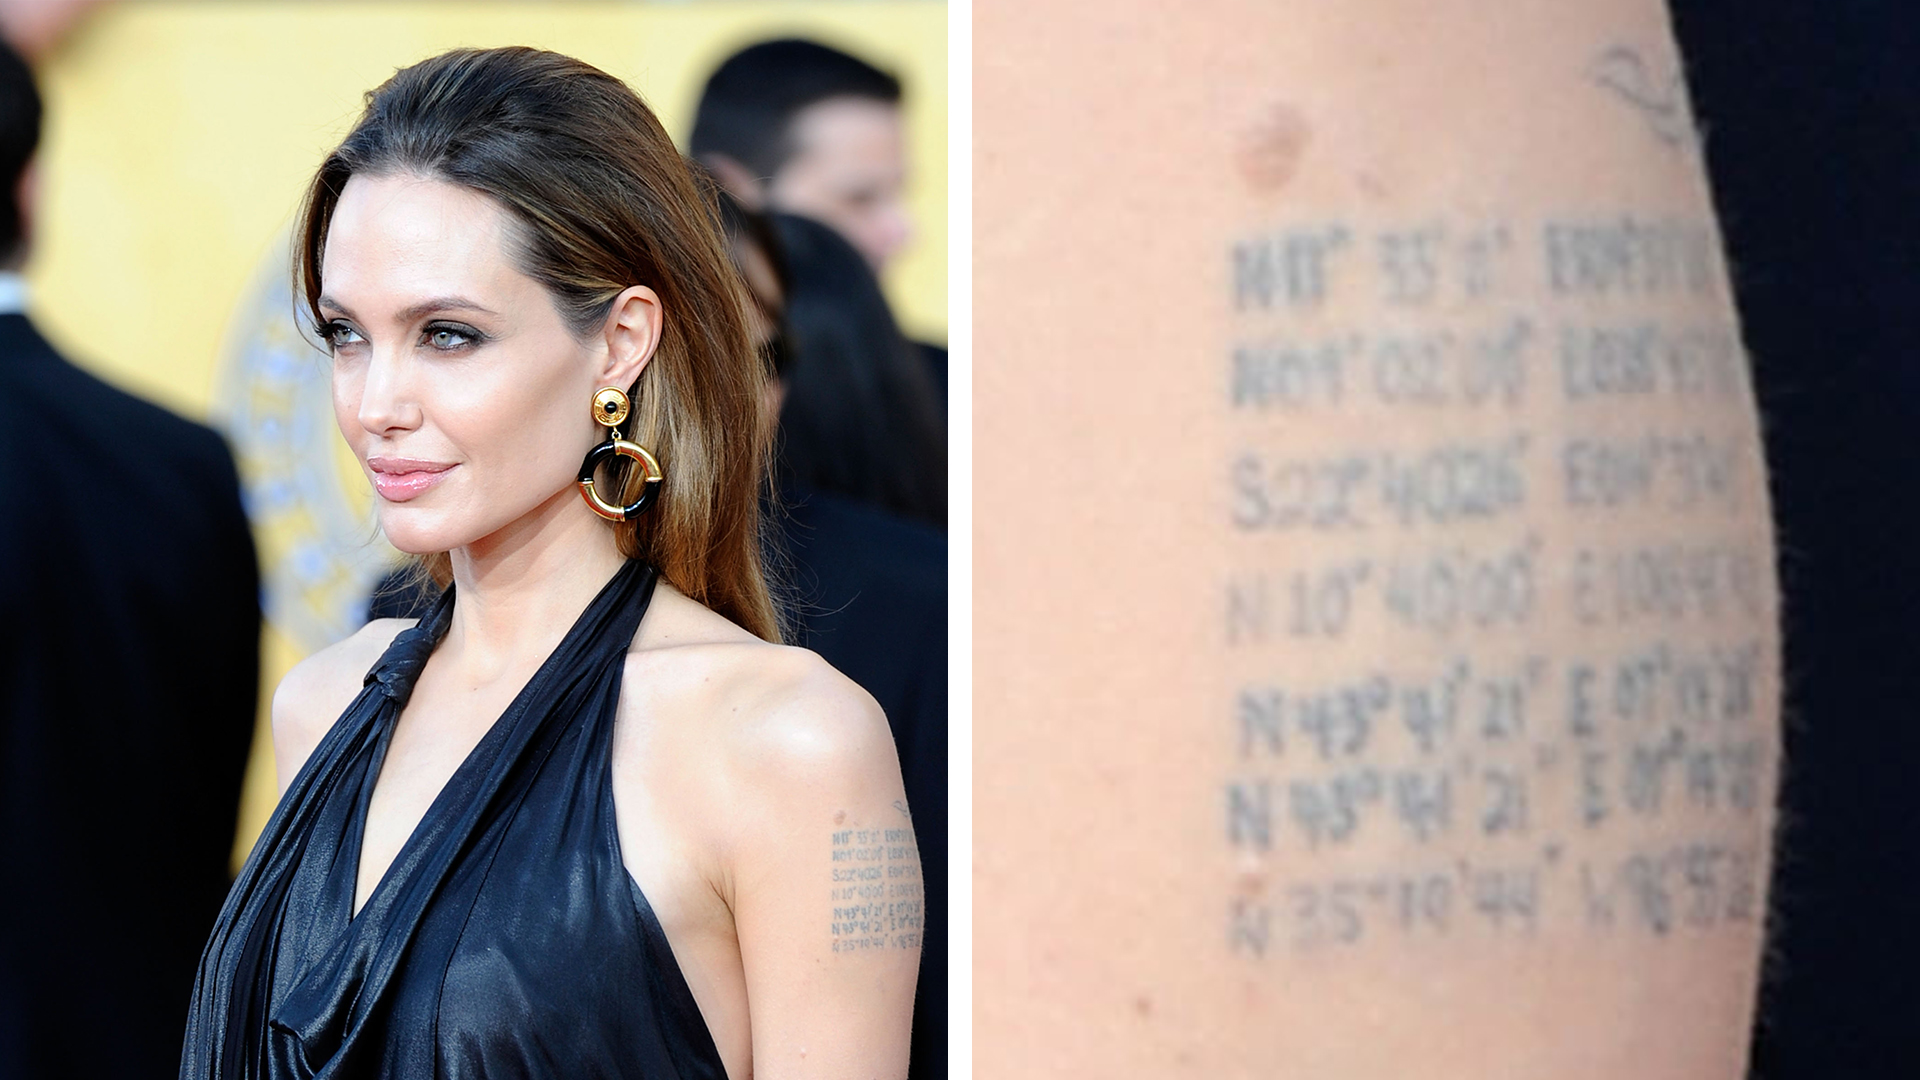 Can You Guess These Actors From Their Tattoos?